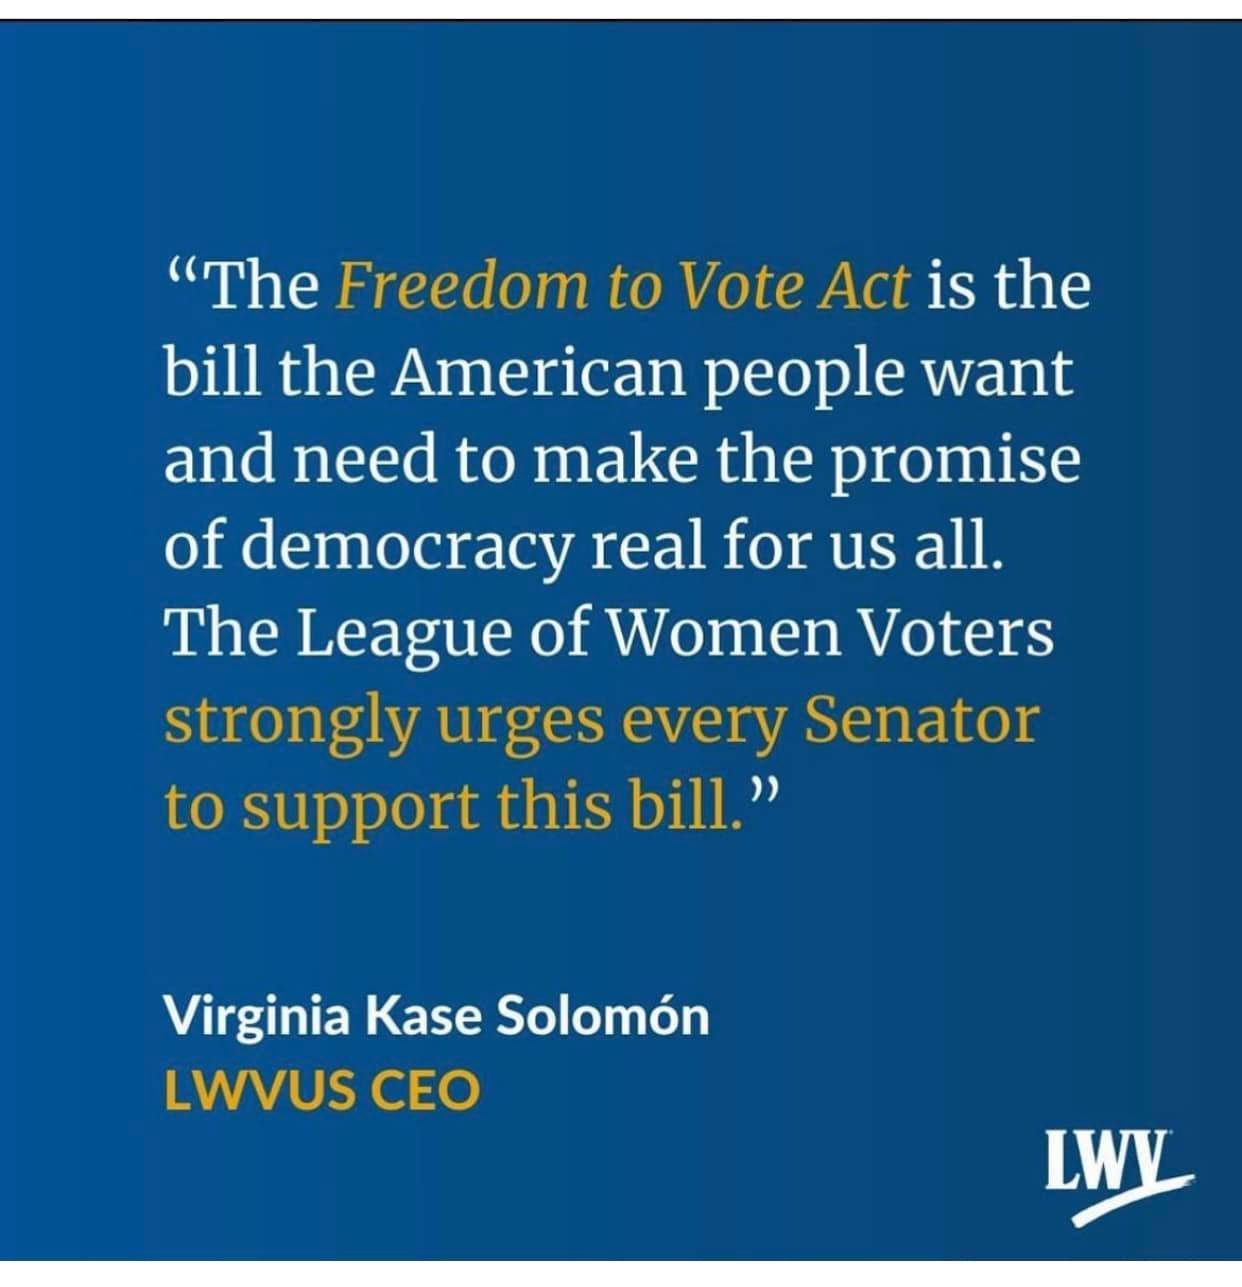 Freedom to Vote Act